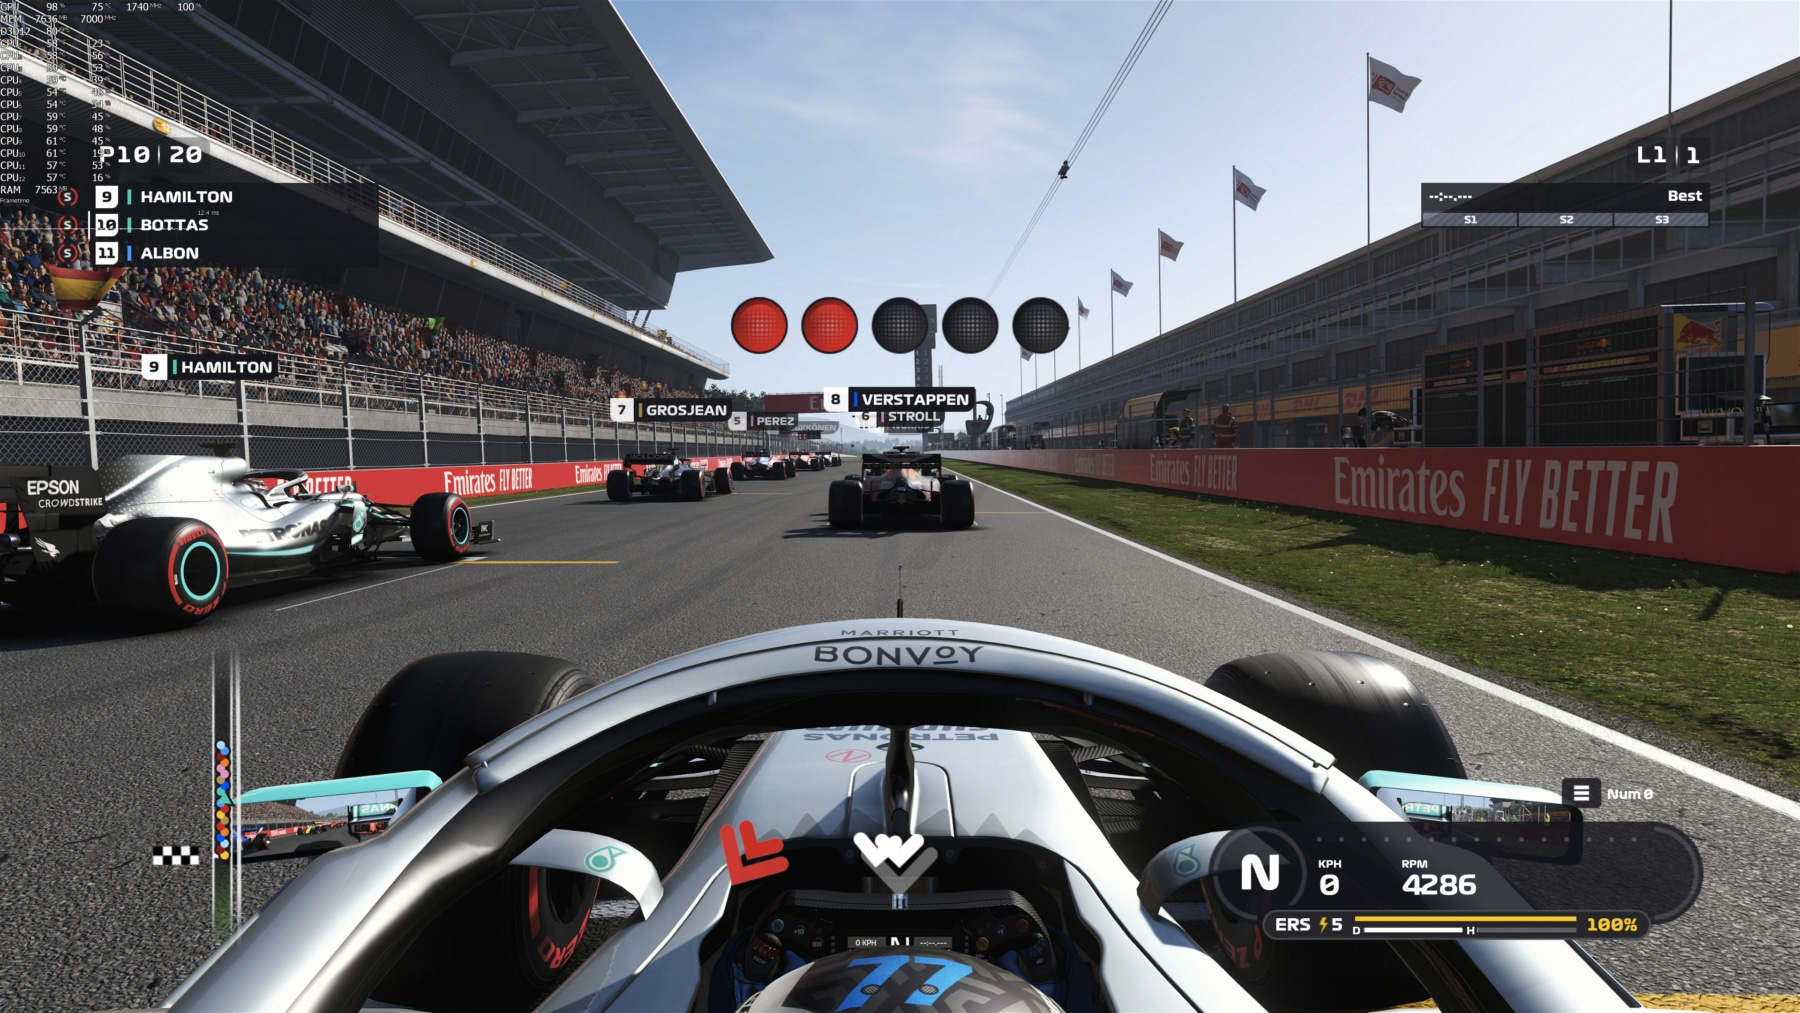 F1 2019 Takes Pole Position as the Best Game in the Series 10 year History 6